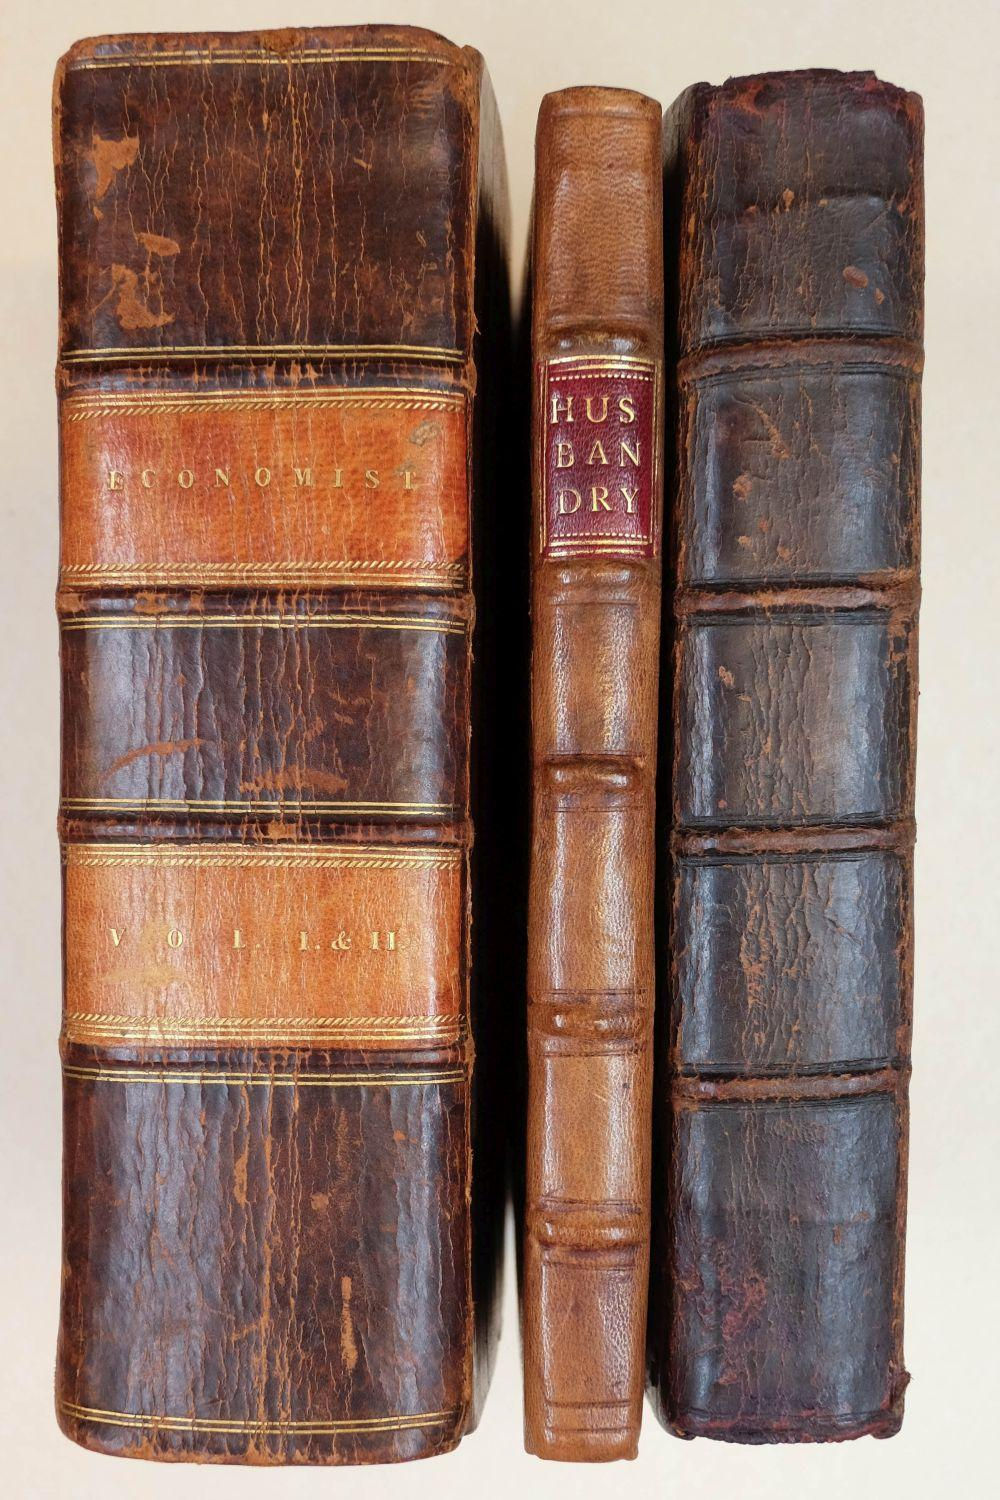 Macintosh (William). A Treatise concerning the Manner of Fallowing of Ground, 1st edition, 1724